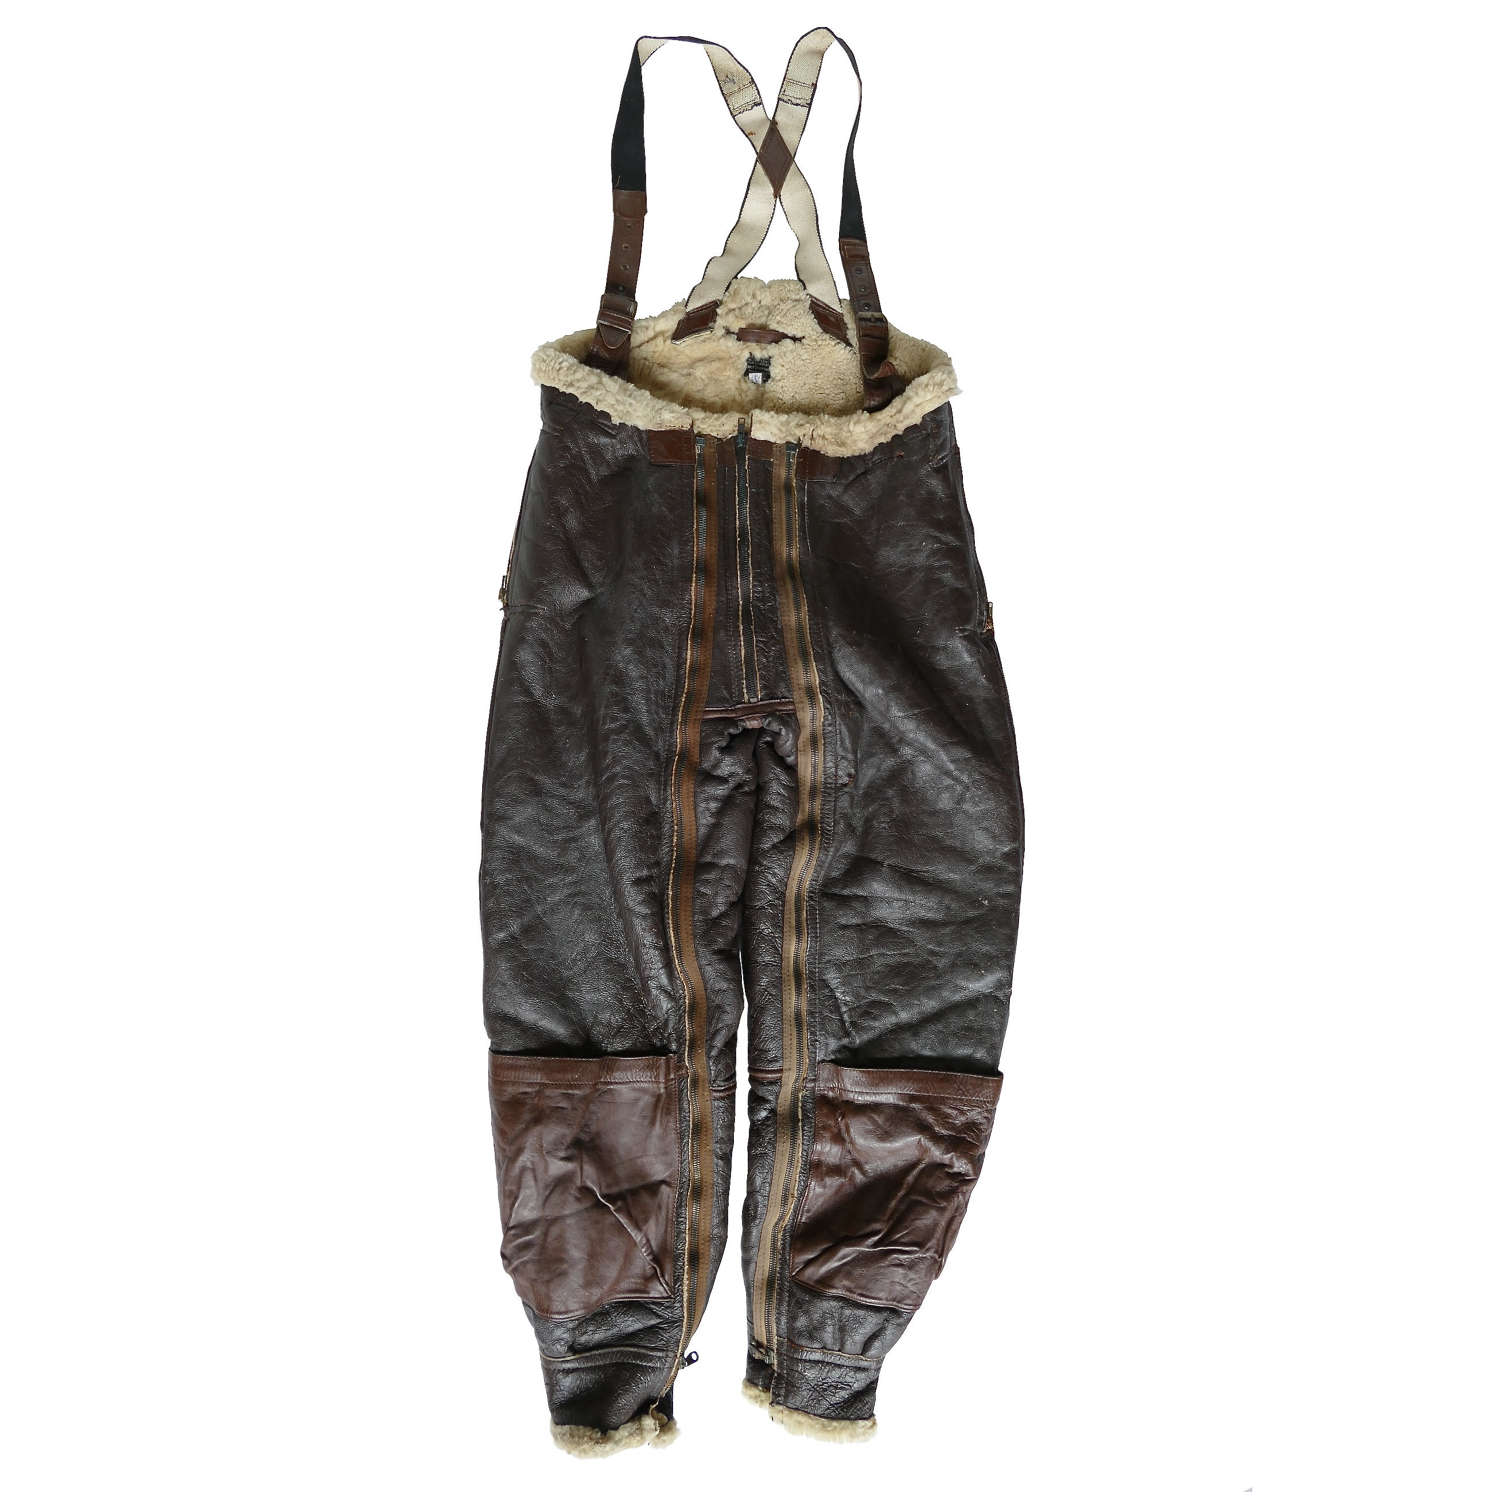 USAAF type A-3 flying trousers